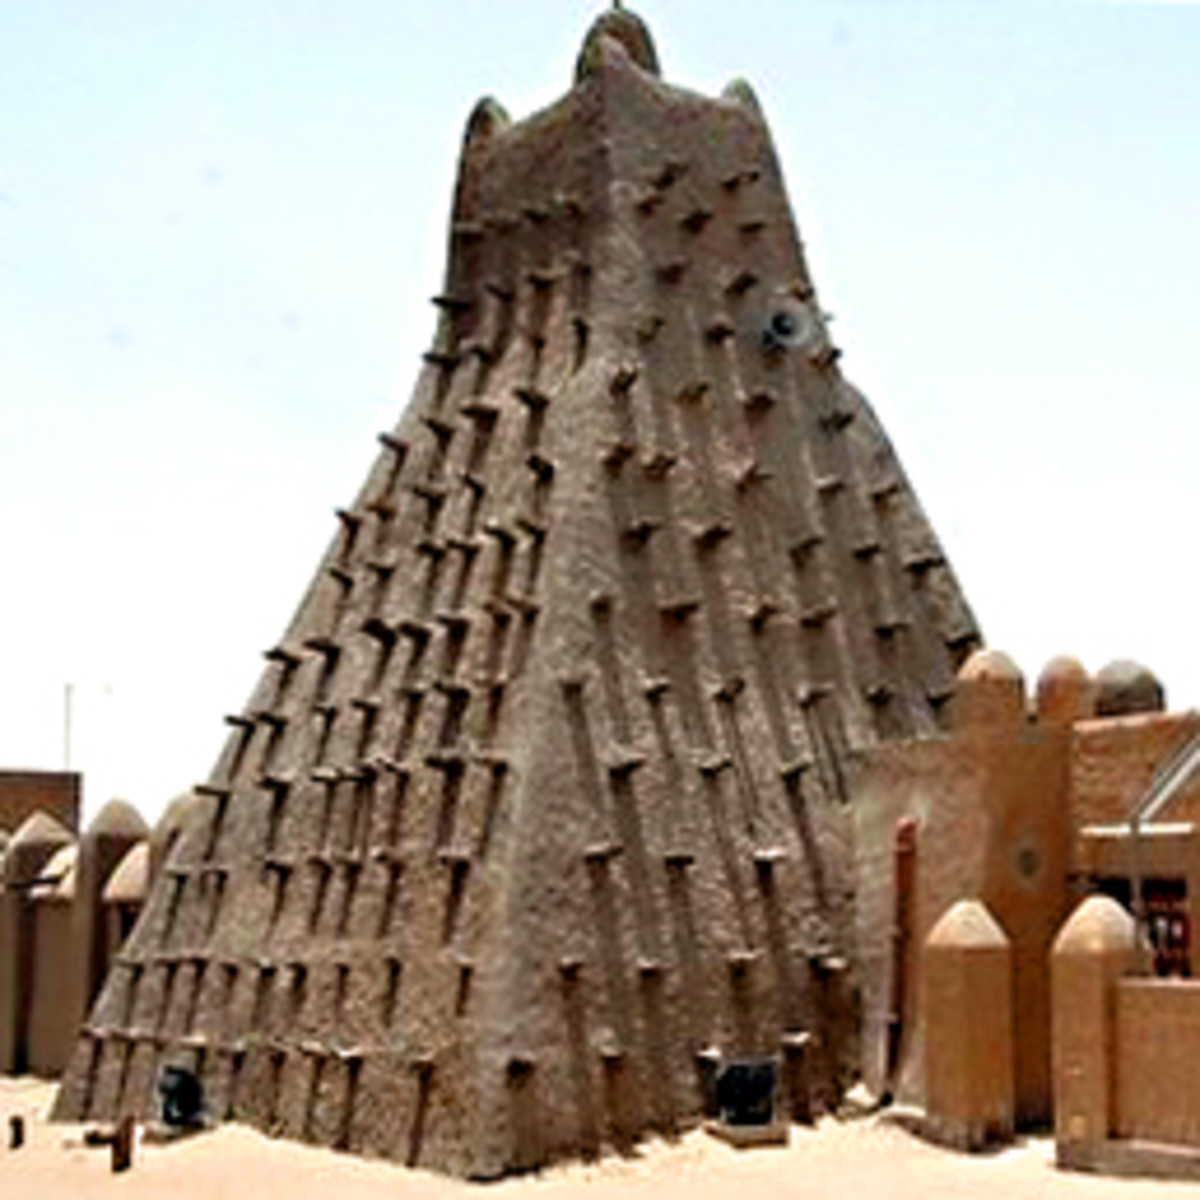 The Mausoleum of Sidi Mahmoud - one of the wonderful mud brick tombs of Timbuktu, destroyed by Ansar Dine in 2012